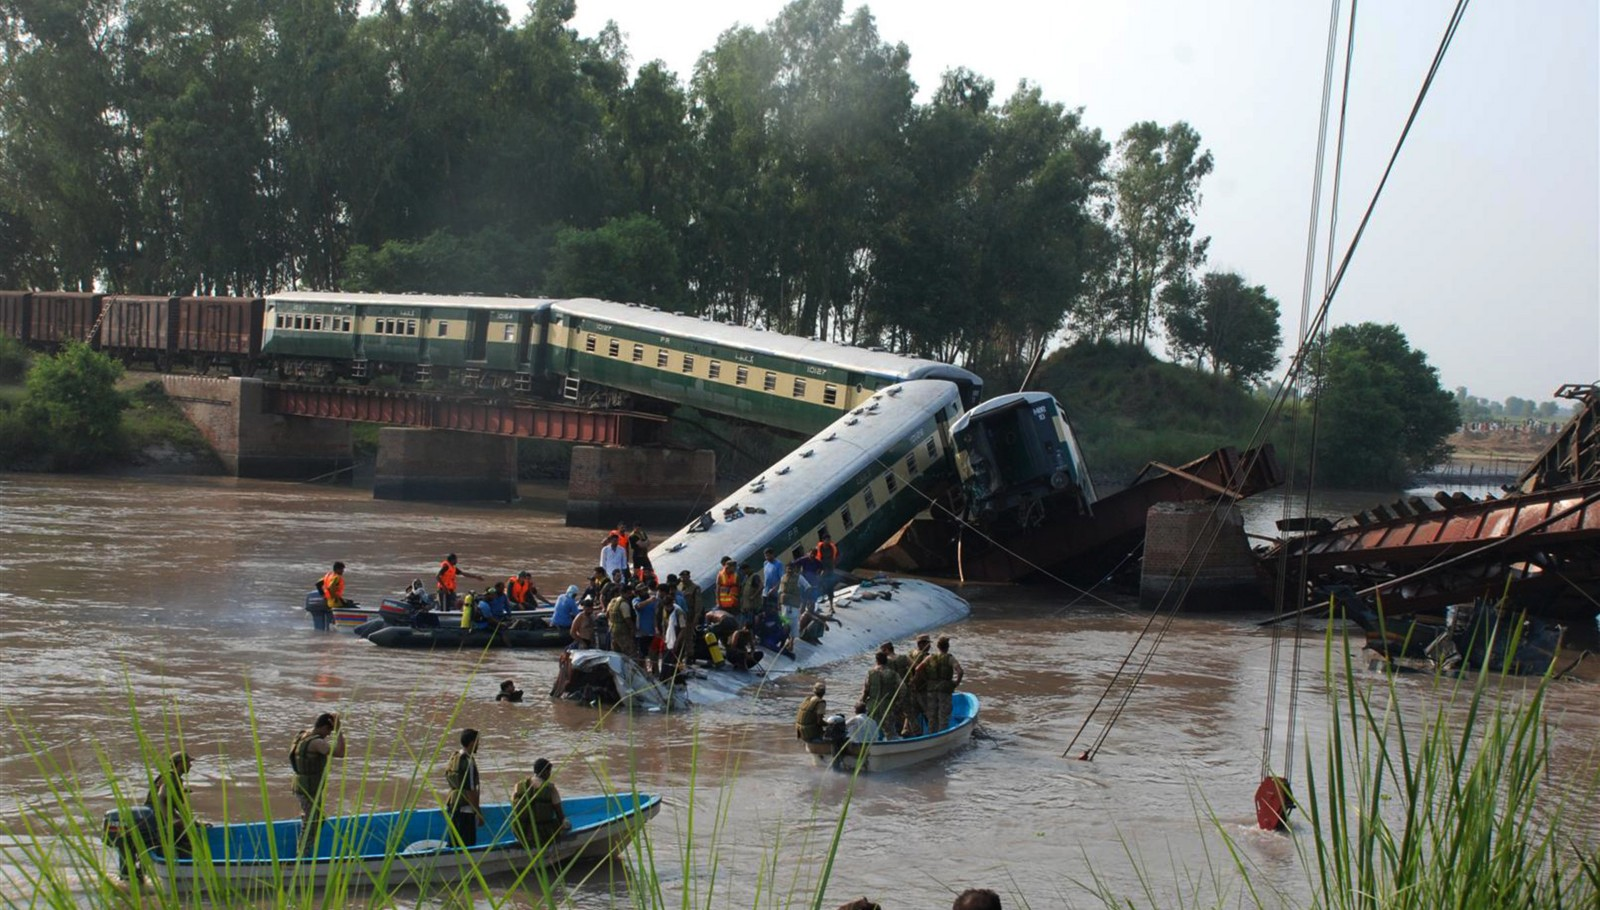 12 killed, 100 injured as 4 compartments of train fall into canal in E. Pakistan